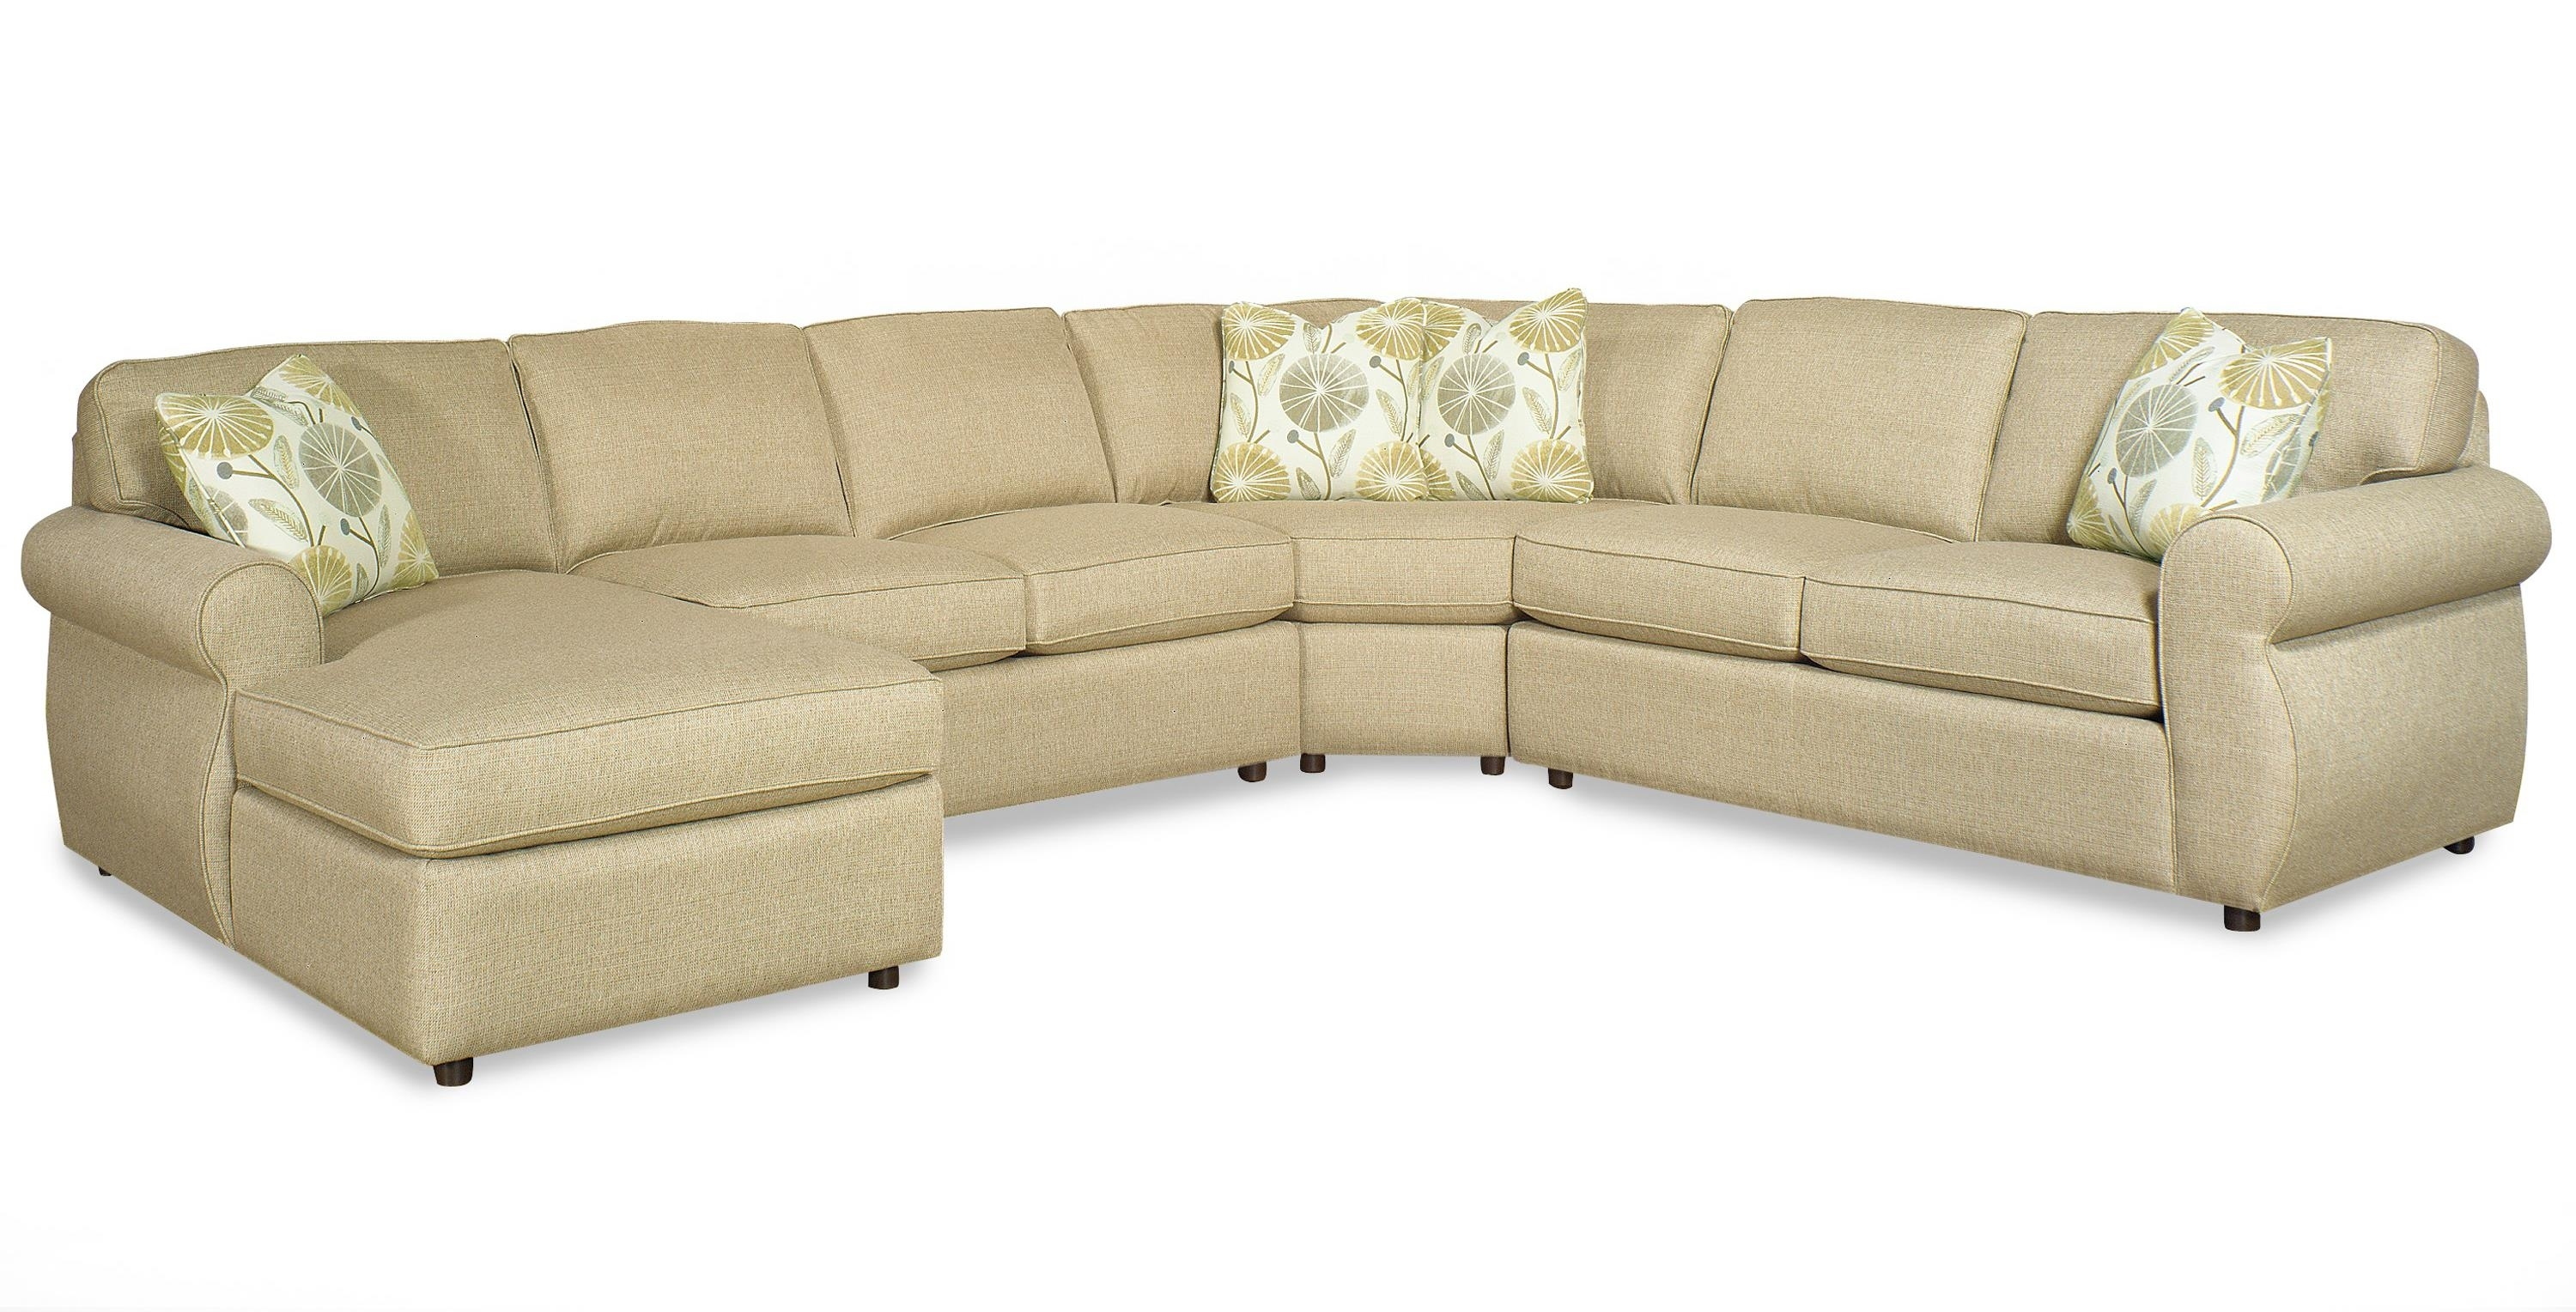 Craftmaster 730100 Transitional Four Piece Sectional Sofa With throughout Kerri 2 Piece Sectionals With Laf Chaise (Image 8 of 30)